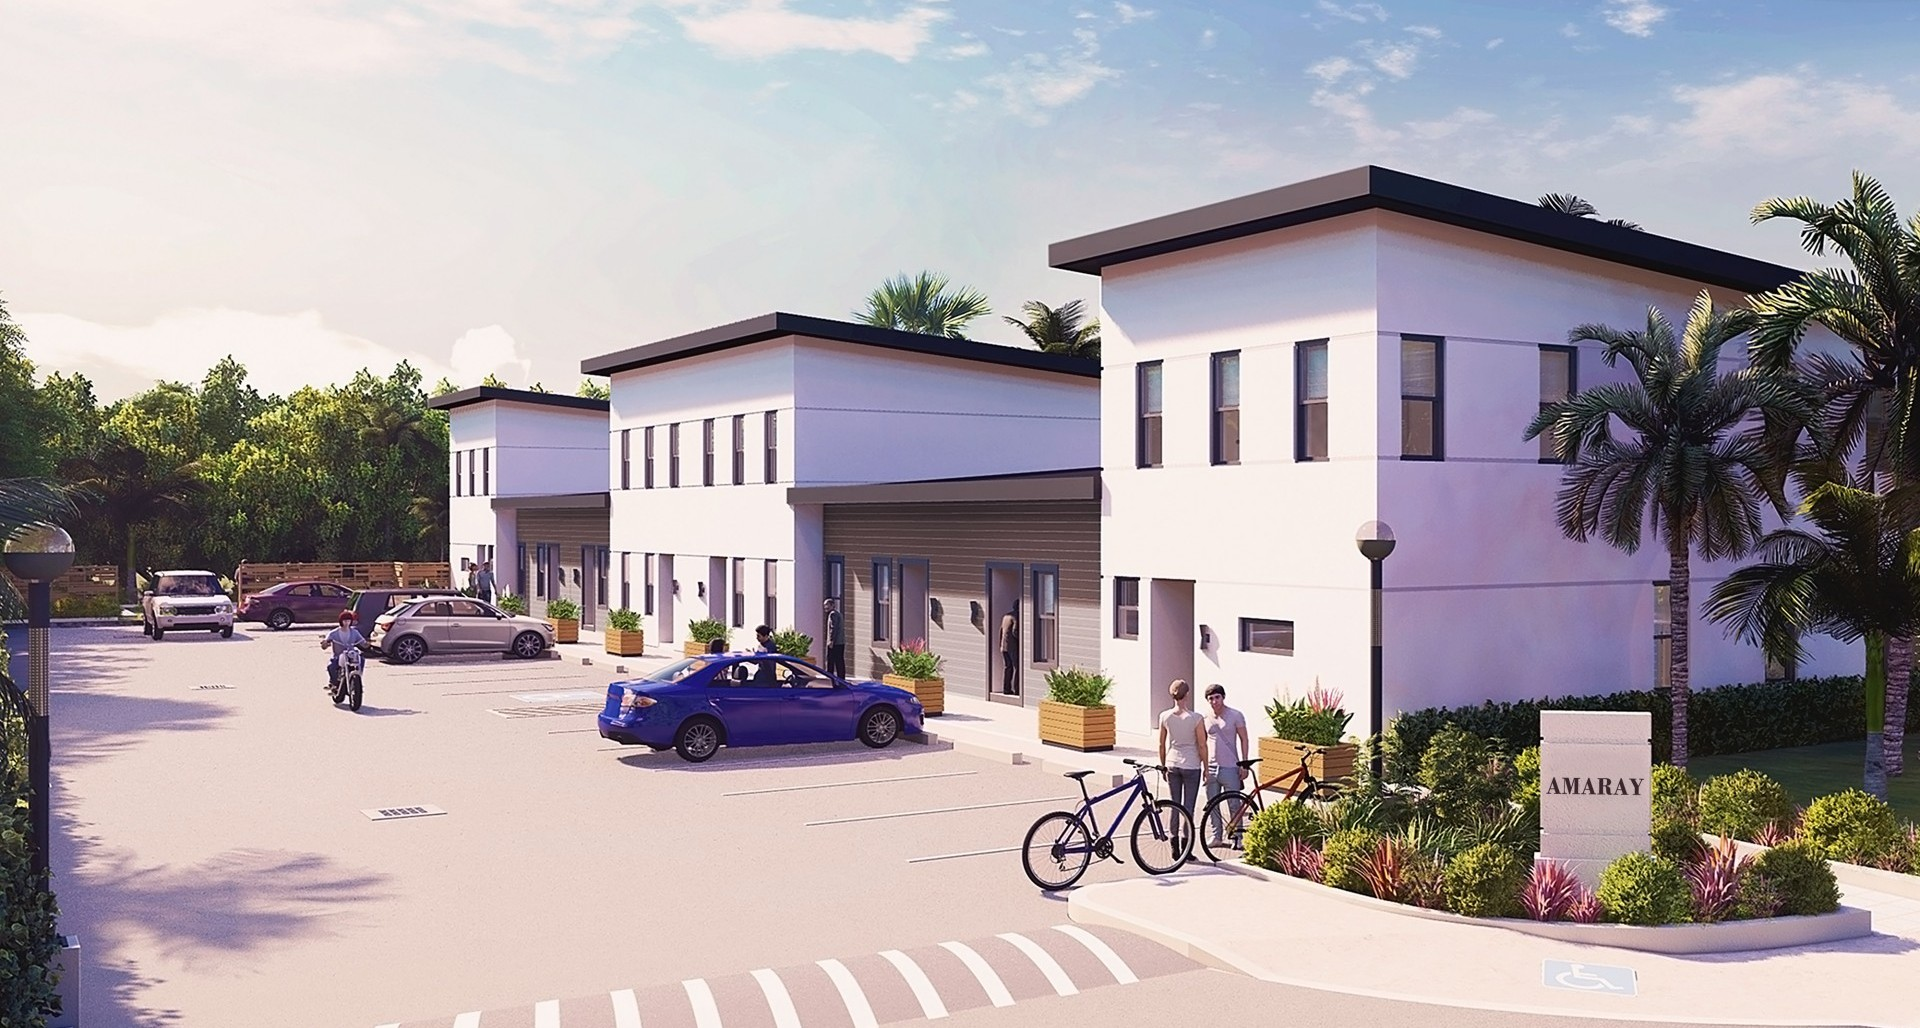 New Amaray One Bdrm Townhome